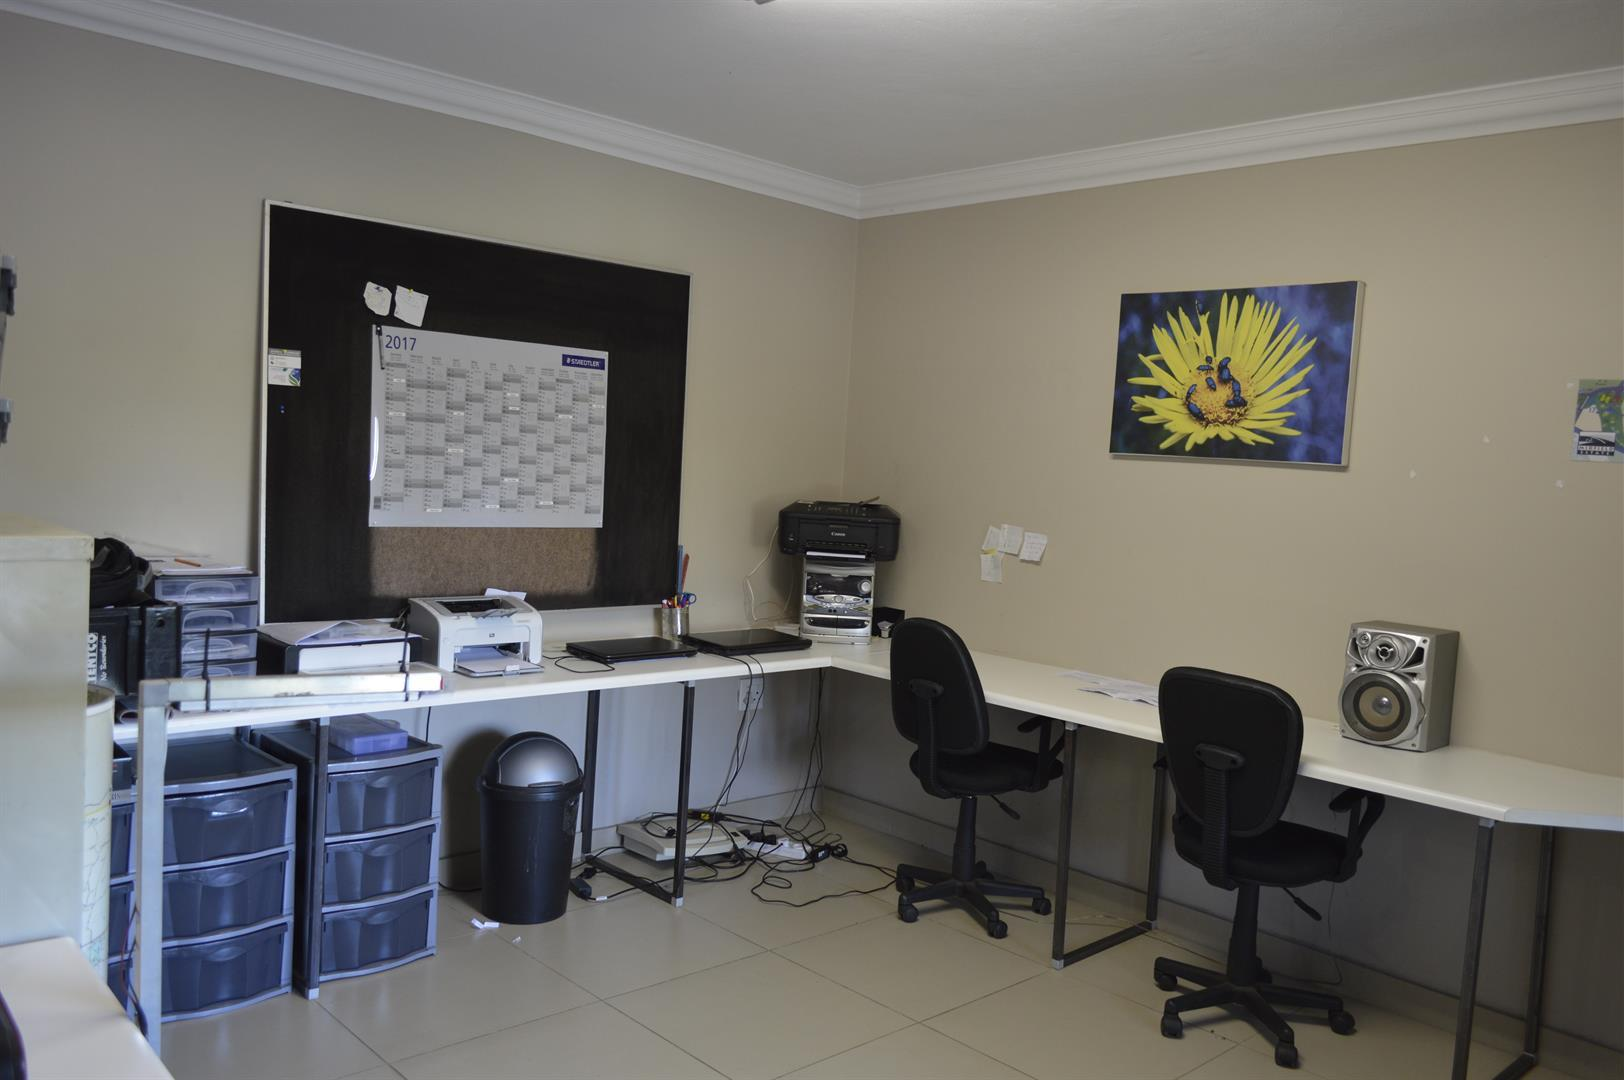 Raslouw A H property for sale. Ref No: 13442161. Picture no 9